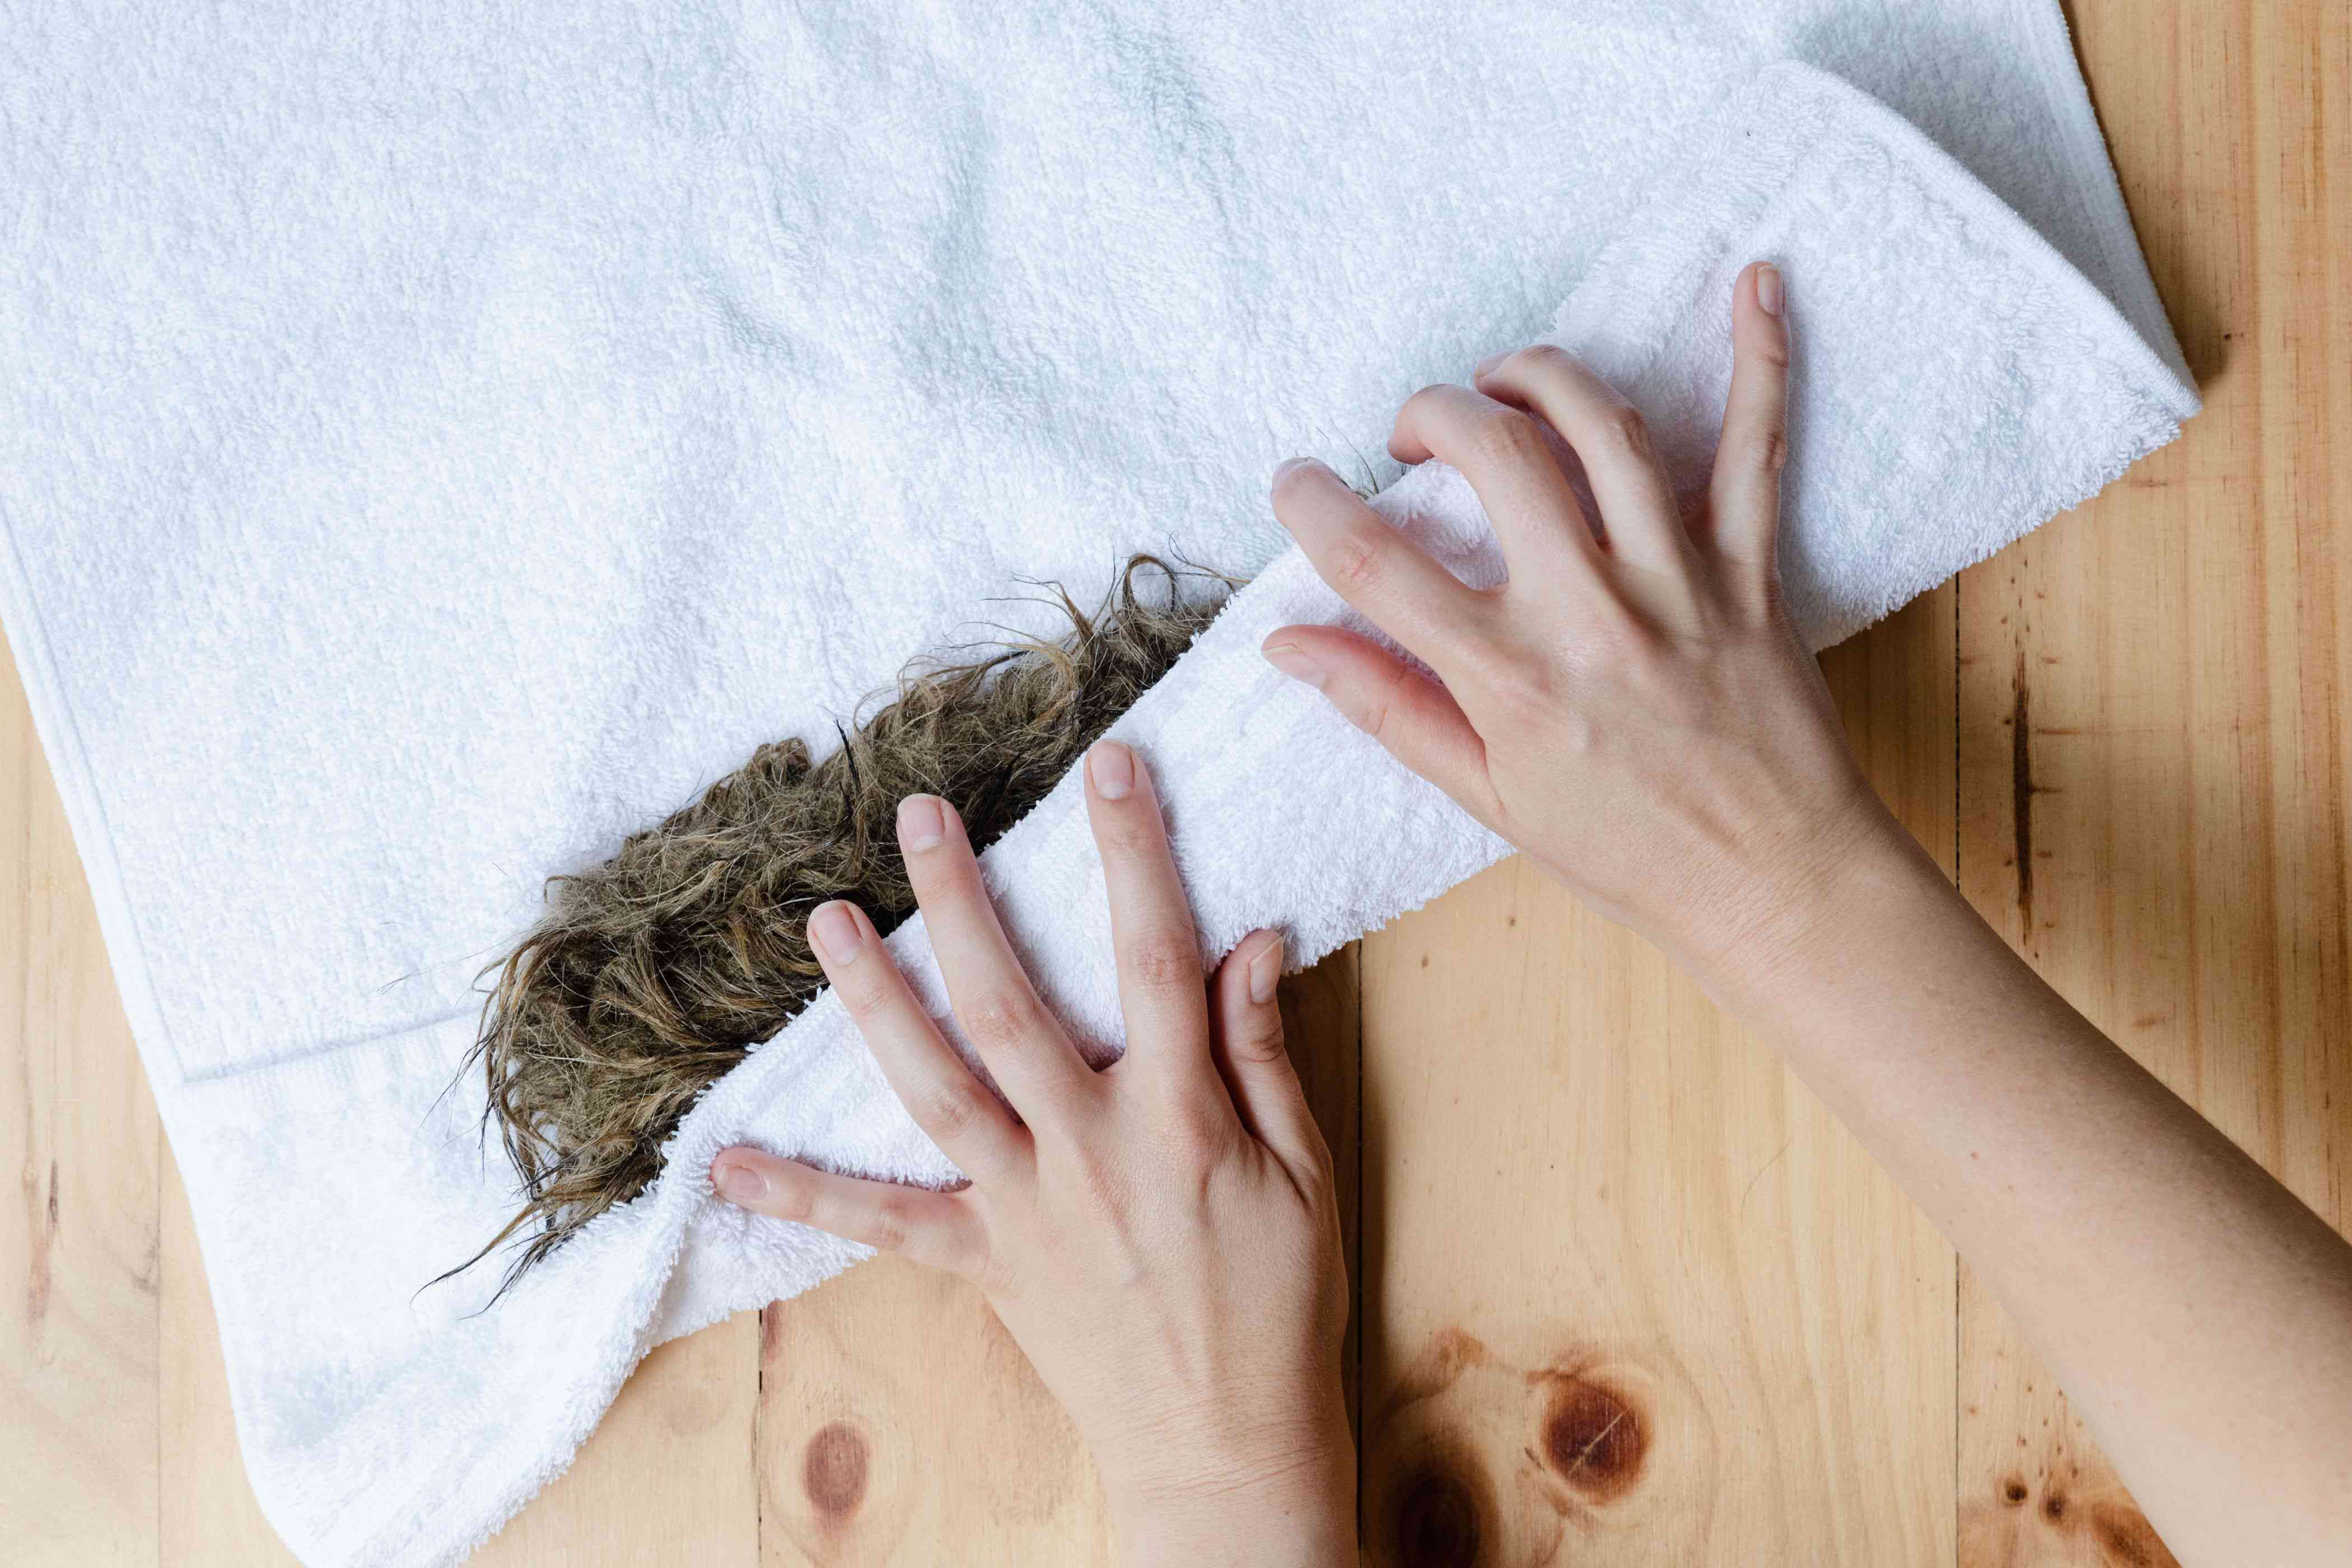 Rolling the damp faux fur in a towel